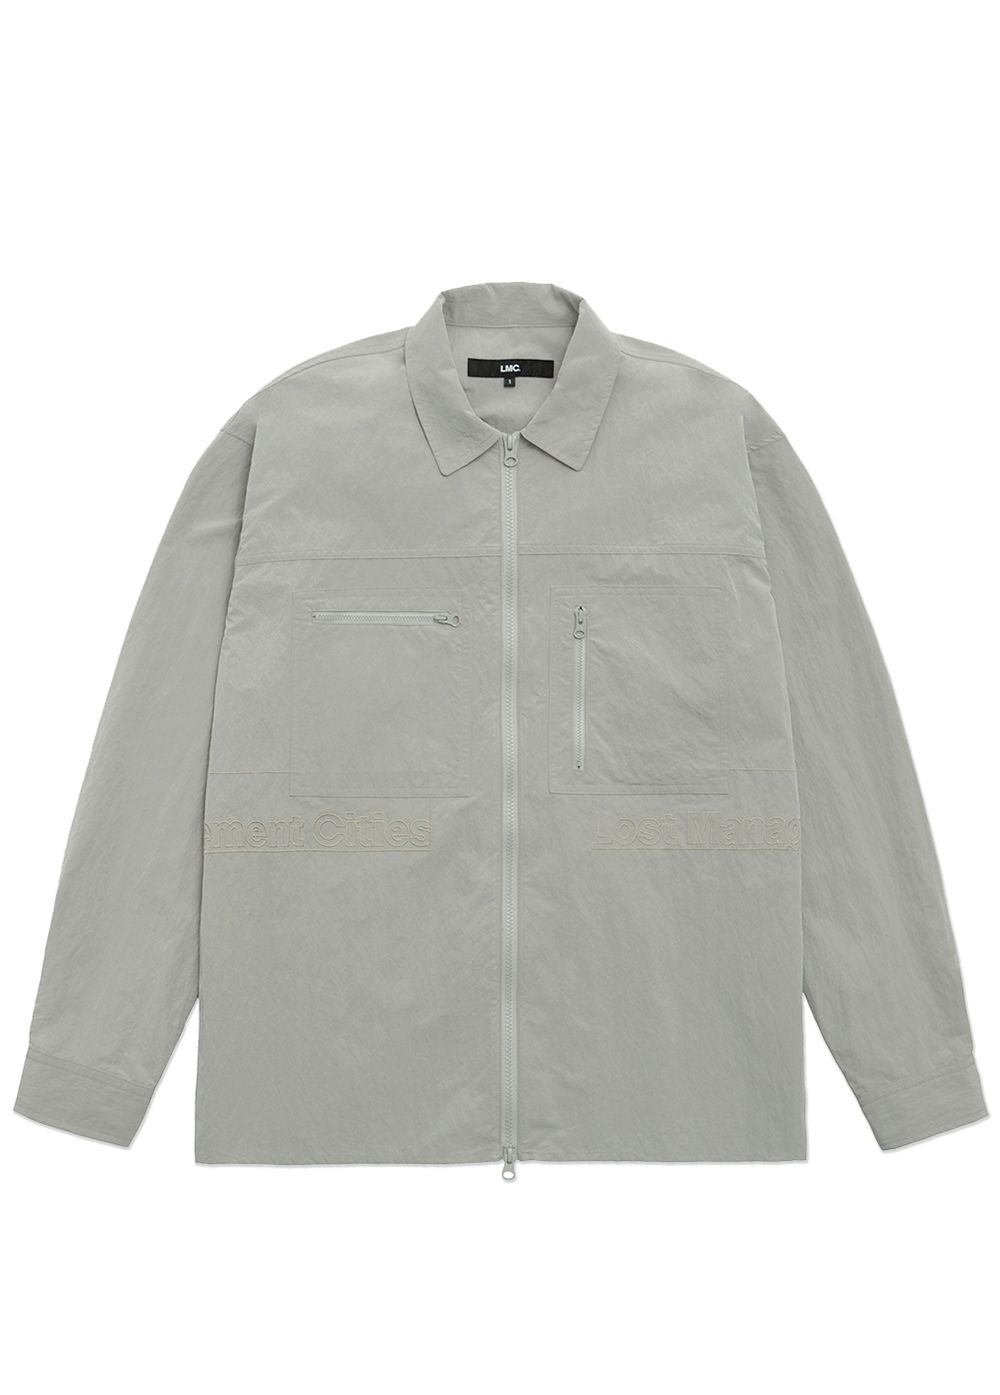 LMC FULL ZIP WORK SHIRT light gray